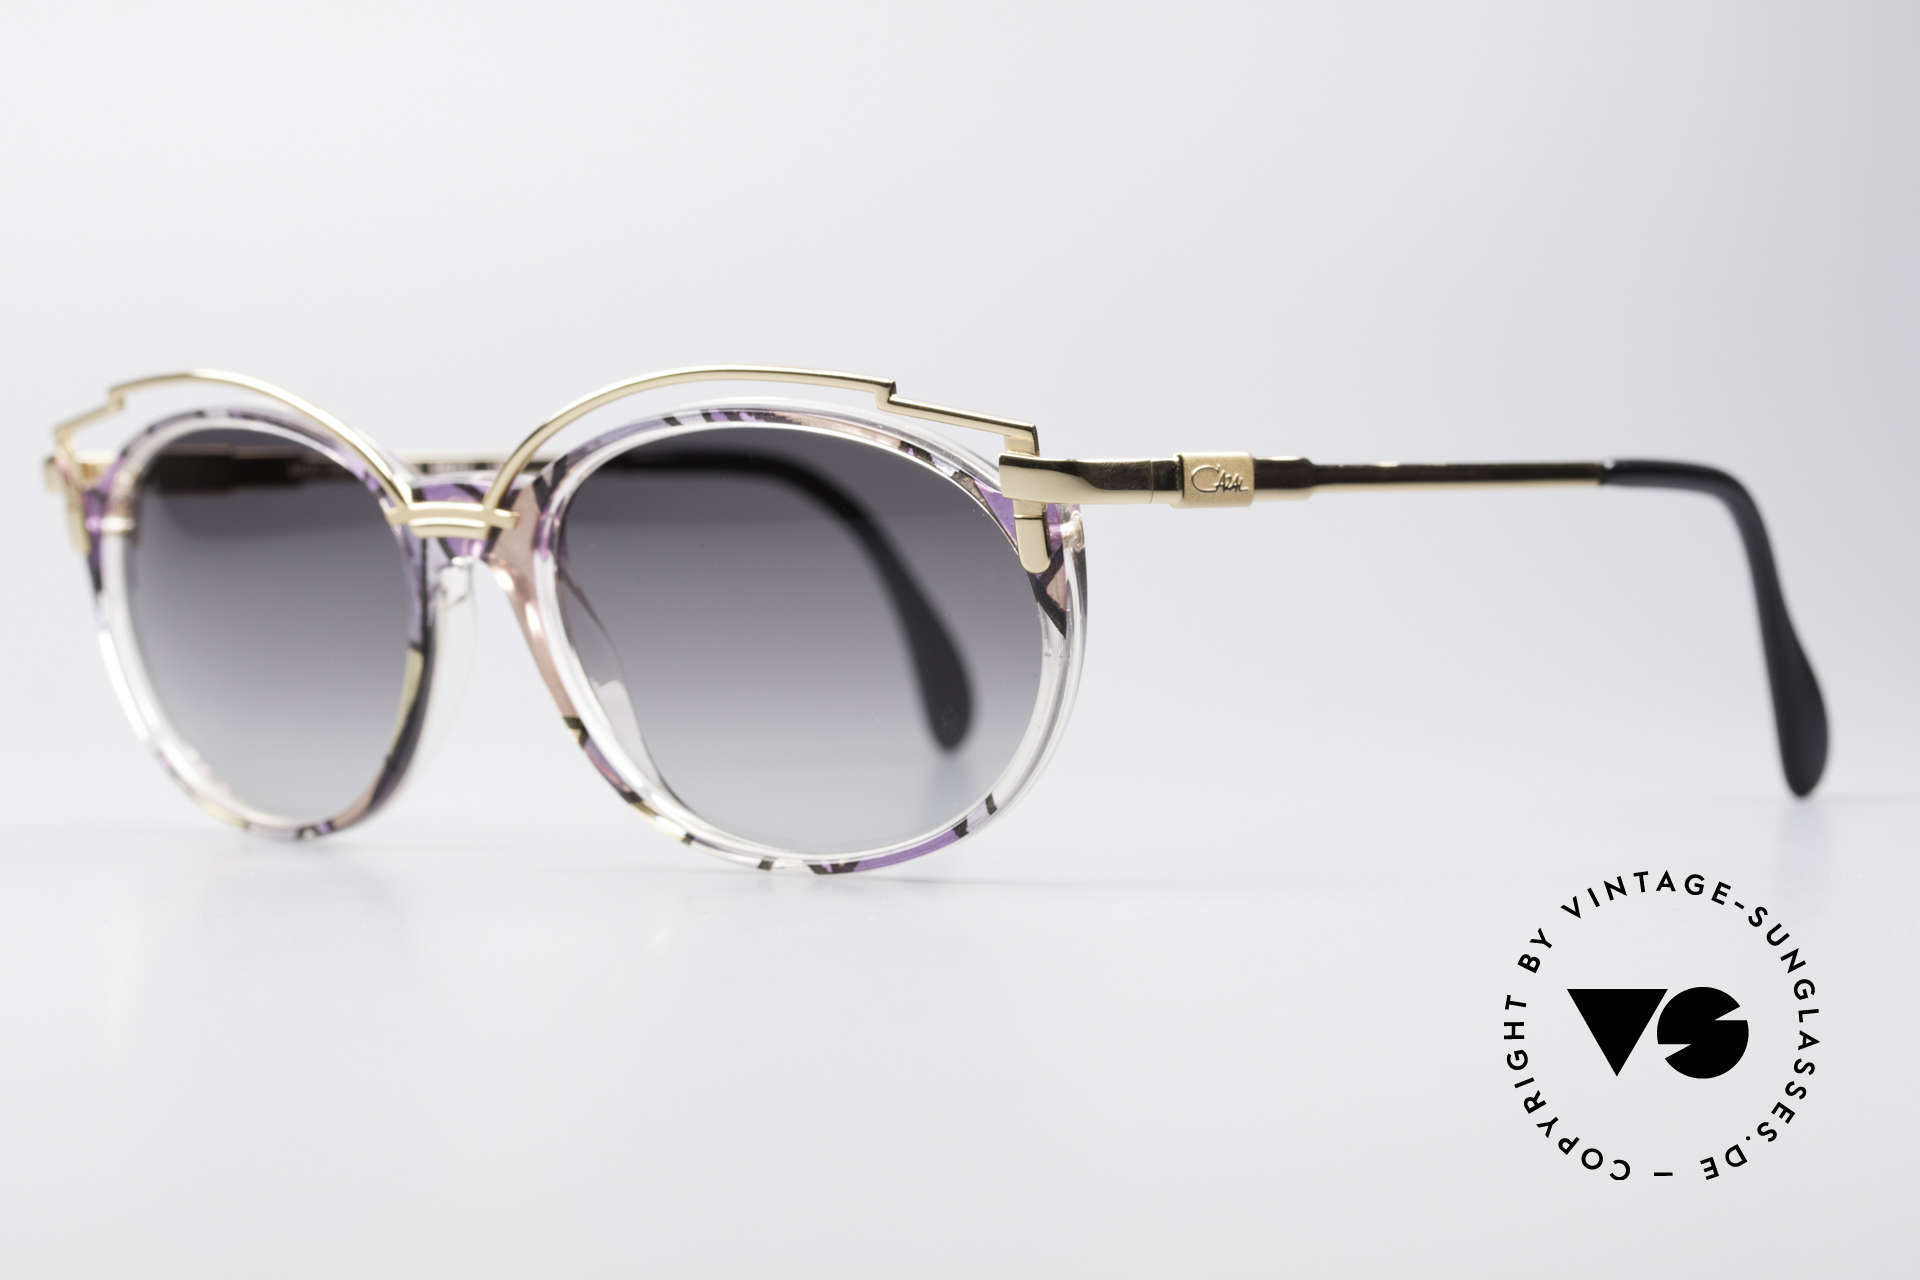 Cazal 358 Vintage 90's Creation Cazal, the design looks even more spectacular with sun lenses, Made for Women